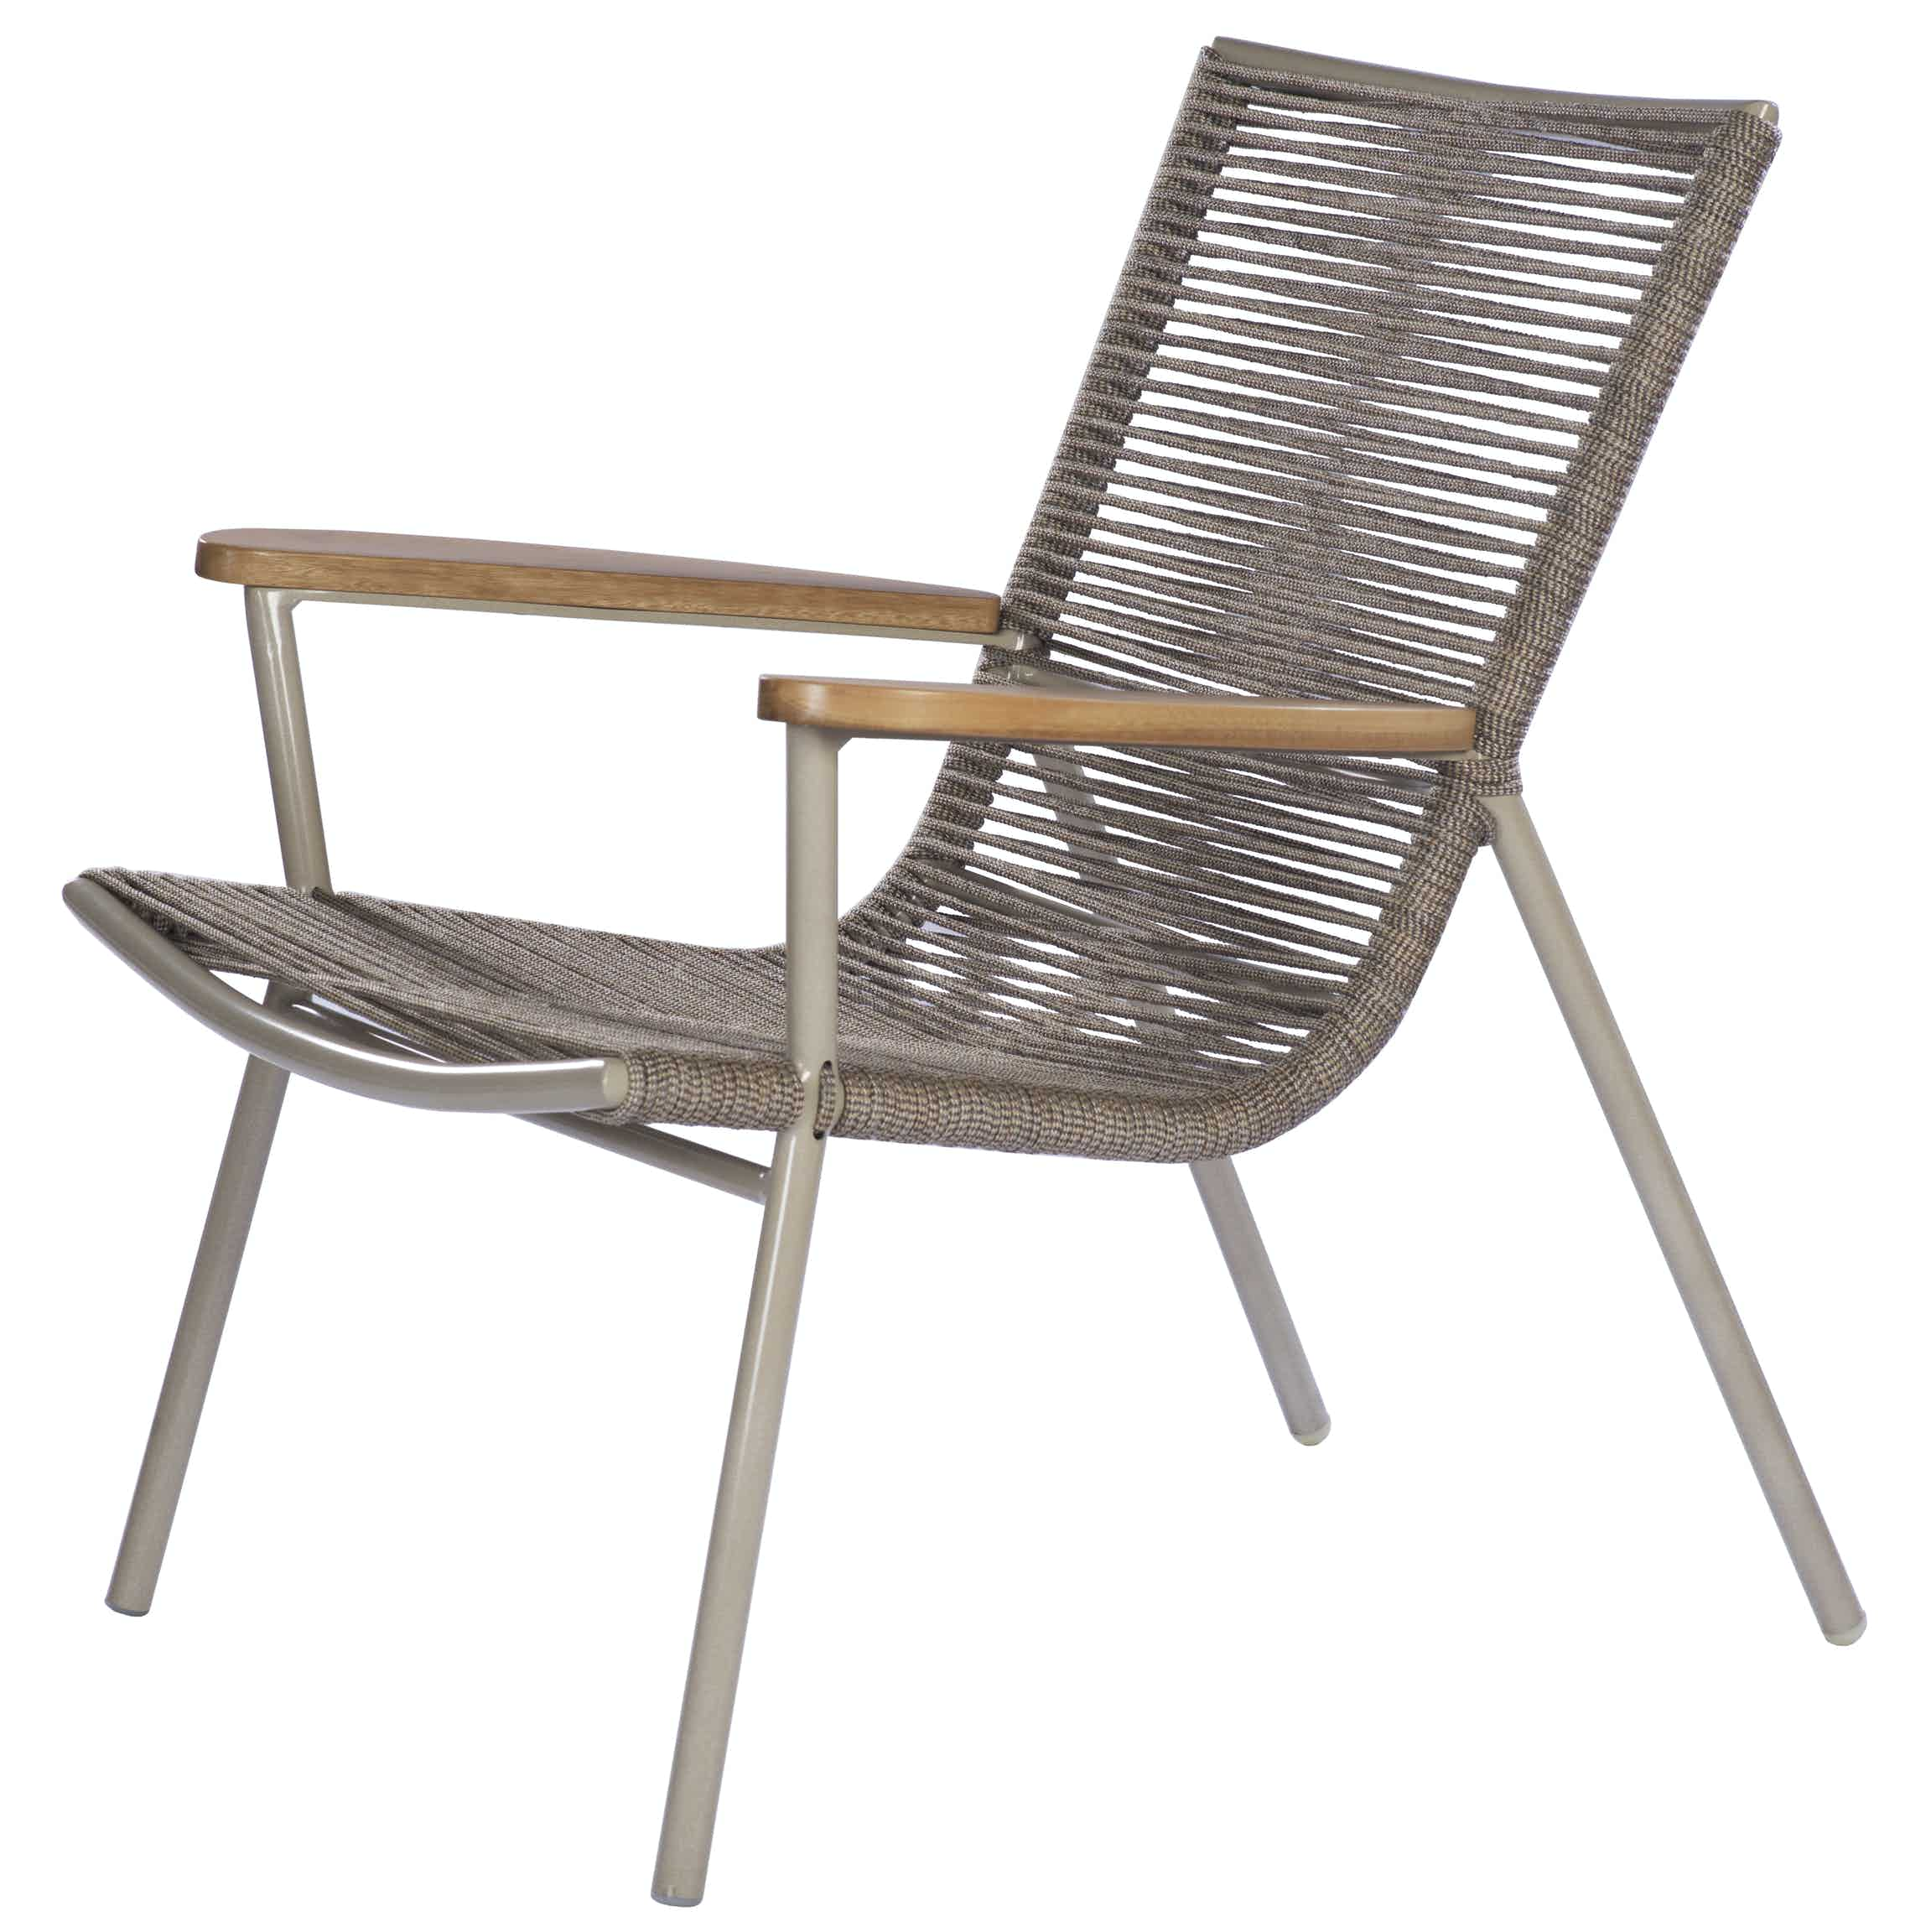 Tidelli amado lounge chair thumbnail haute living